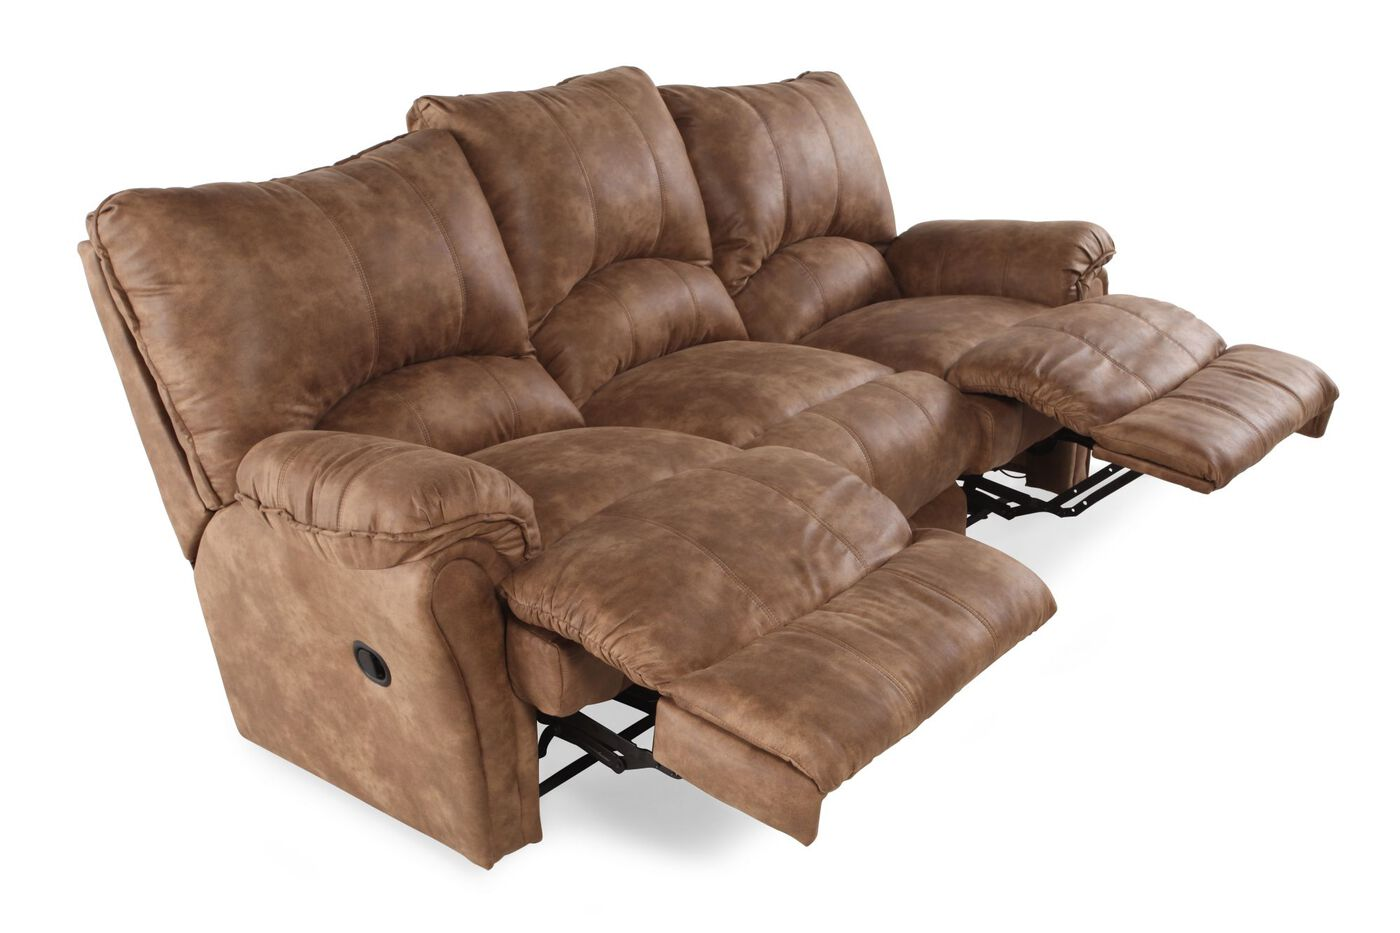 Microfiber Reclining Wall Saver Sofa In Caramel Mathis Brothers Furniture